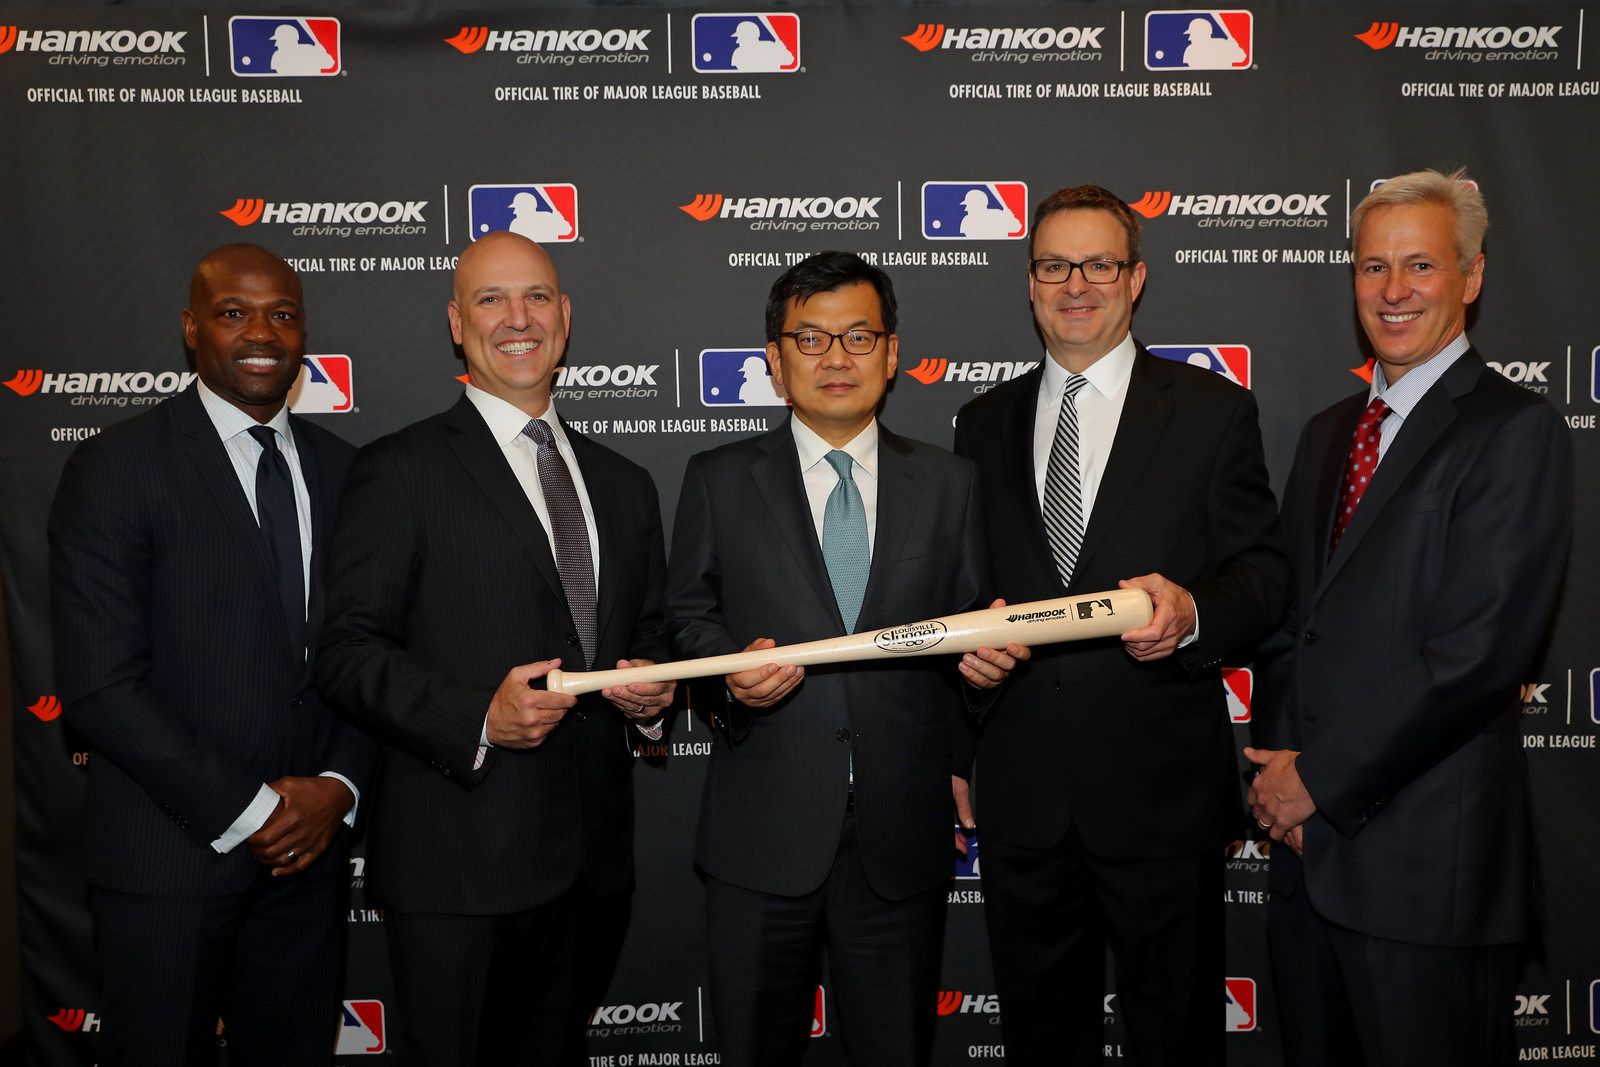 Hankook Tire and Major League Baseball (MLB) announced a new multi-year sponsorship that names Hankook Tire the Official Tire of MLB. L-R: MLB Network Analyst Harold Reynolds, MLB Executive Vice President of Commerce Noah Garden, President of Hankook Tire America Corp. Hosung Suh, Senior Sales Director of Hankook Tire America Corp. Jim Sicking, and MLB Senior Vice President of Sponsorship Sales Bill Morningstar. (PRNewsfoto/Hankook Tire America Corp.)